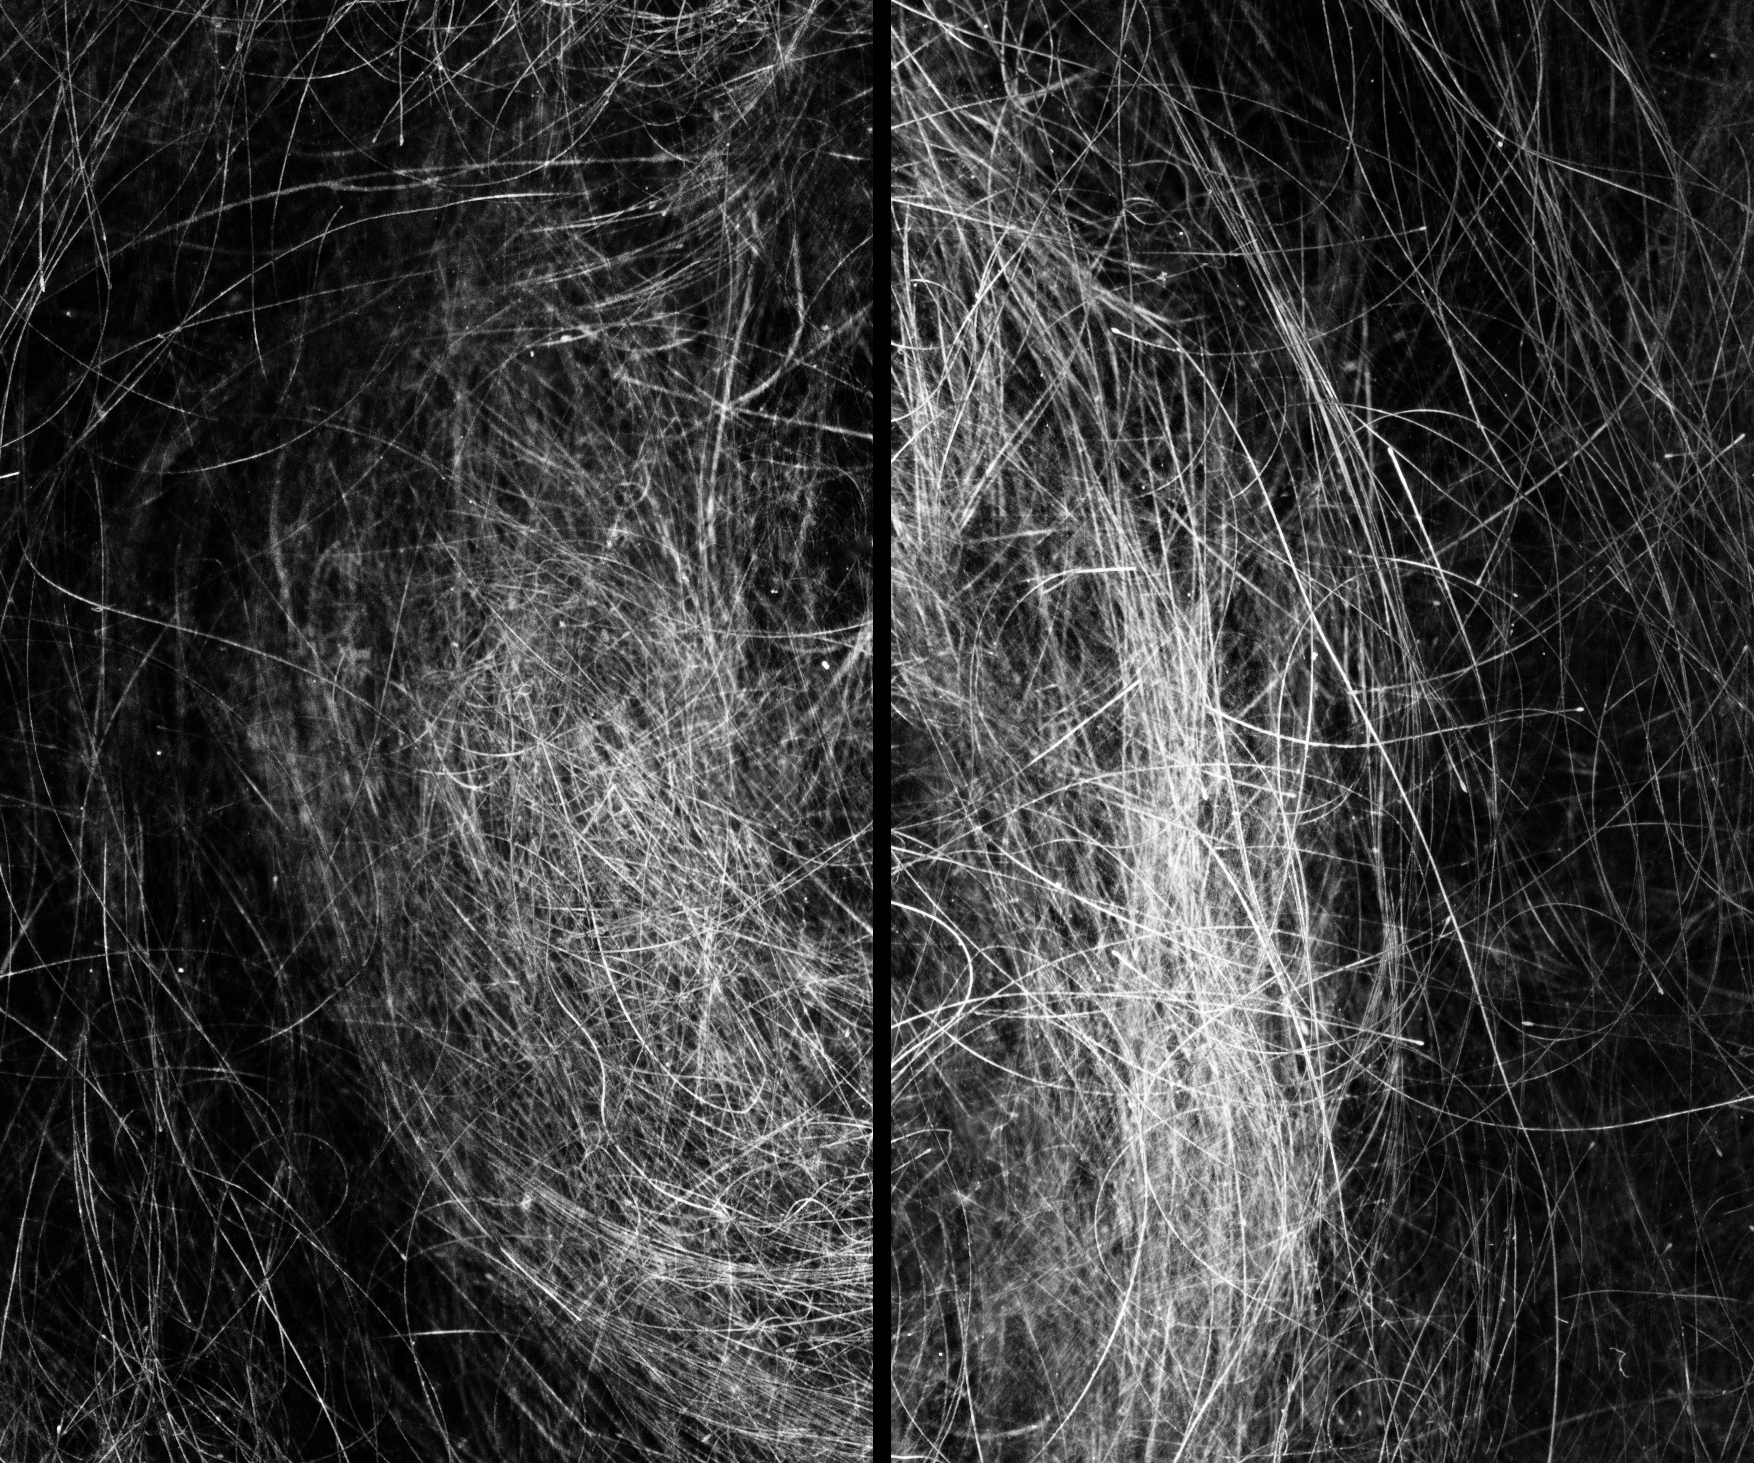 An Ordered Chaos #5 (Hair 1), Archival Inkjet Print, 16 by 20 inches, 2016